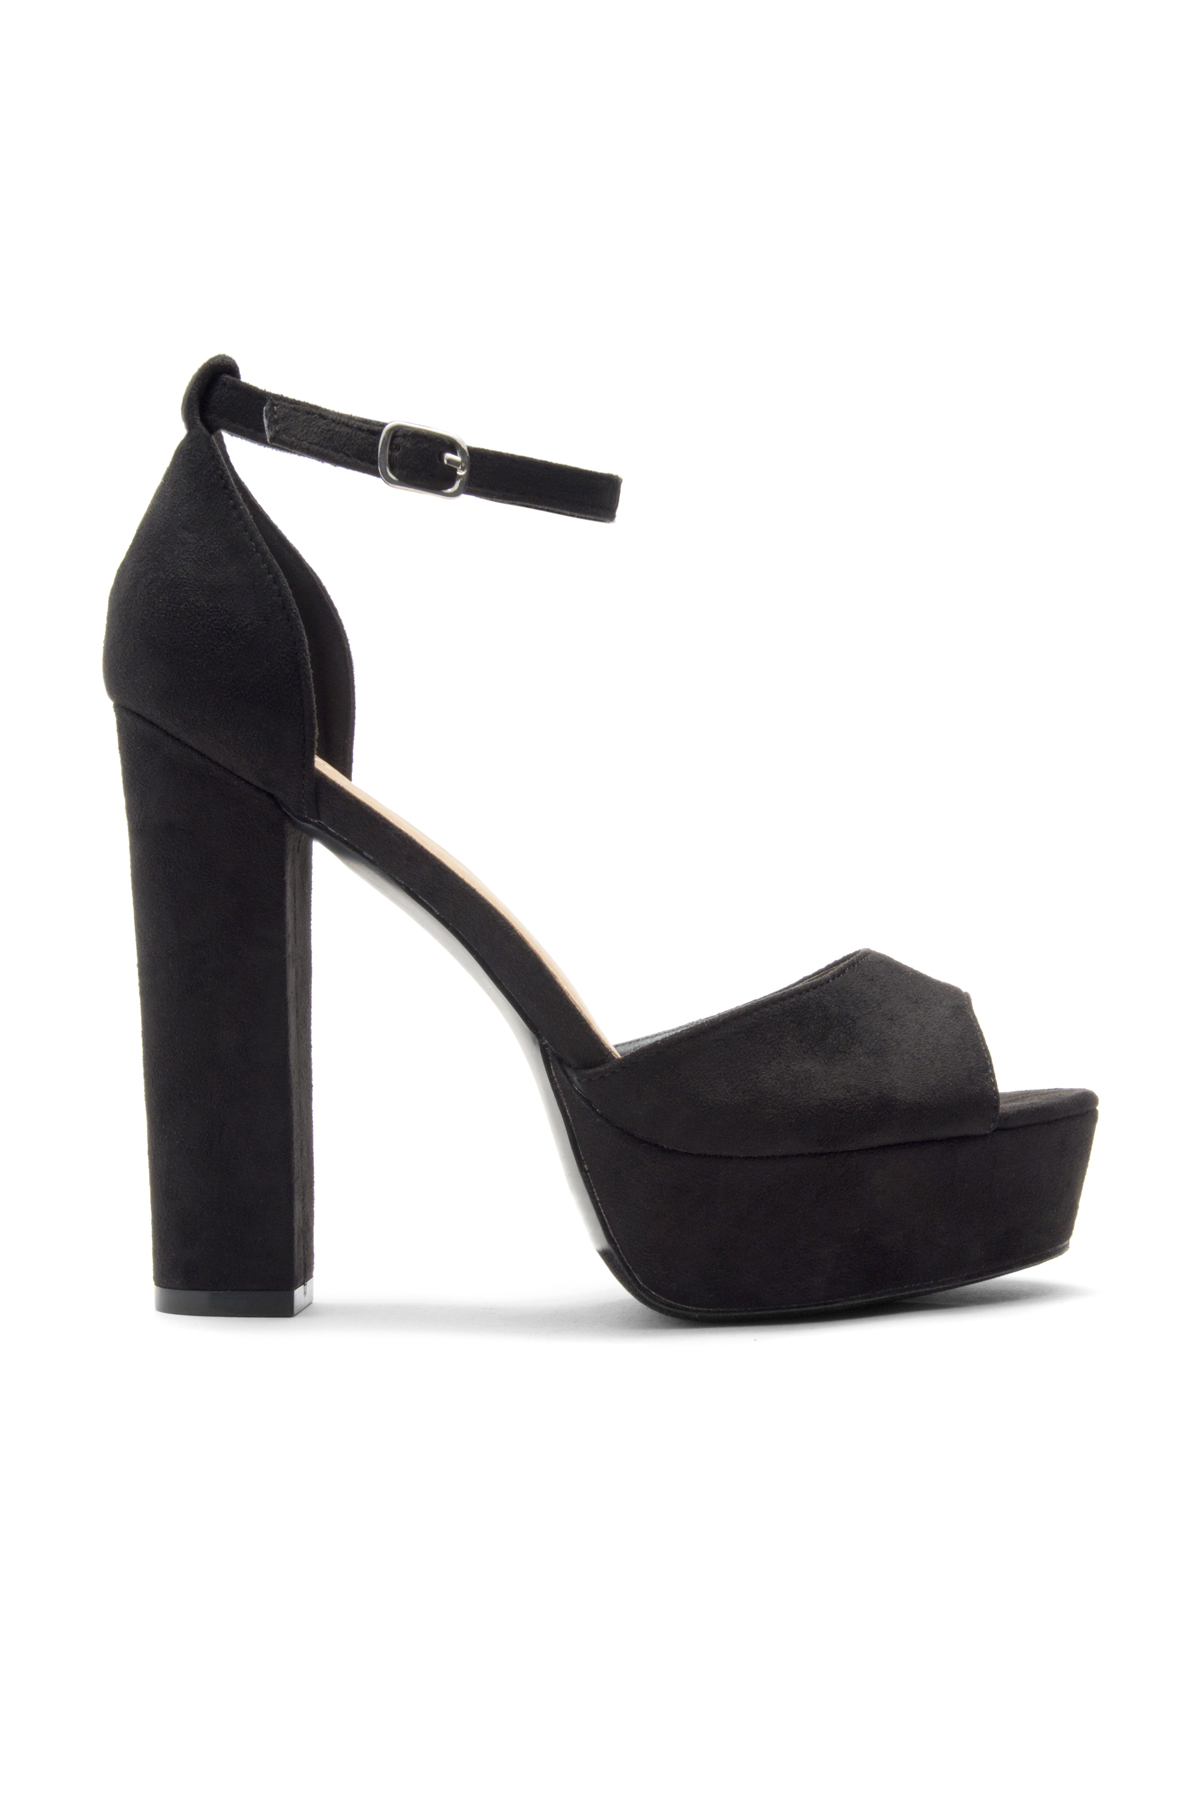 9a91b833ab3 White And Black Heels With Ankle Strap - Js Heel